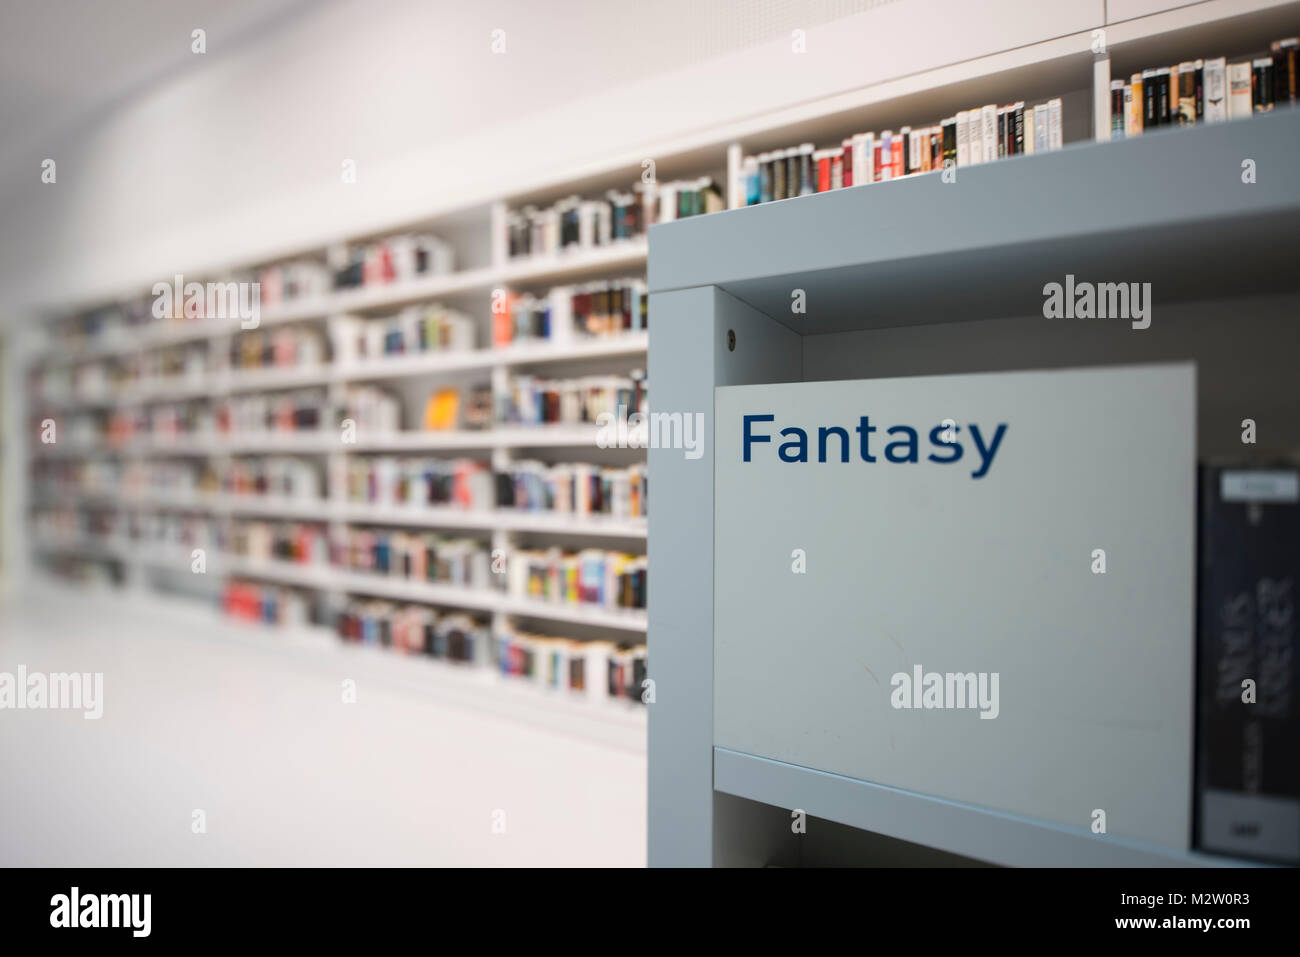 Bookshelf category Fantasy of the town library, architects RKW Eun Young Yi, Stuttgart, Baden-Wurttemberg, Germany - Stock Image